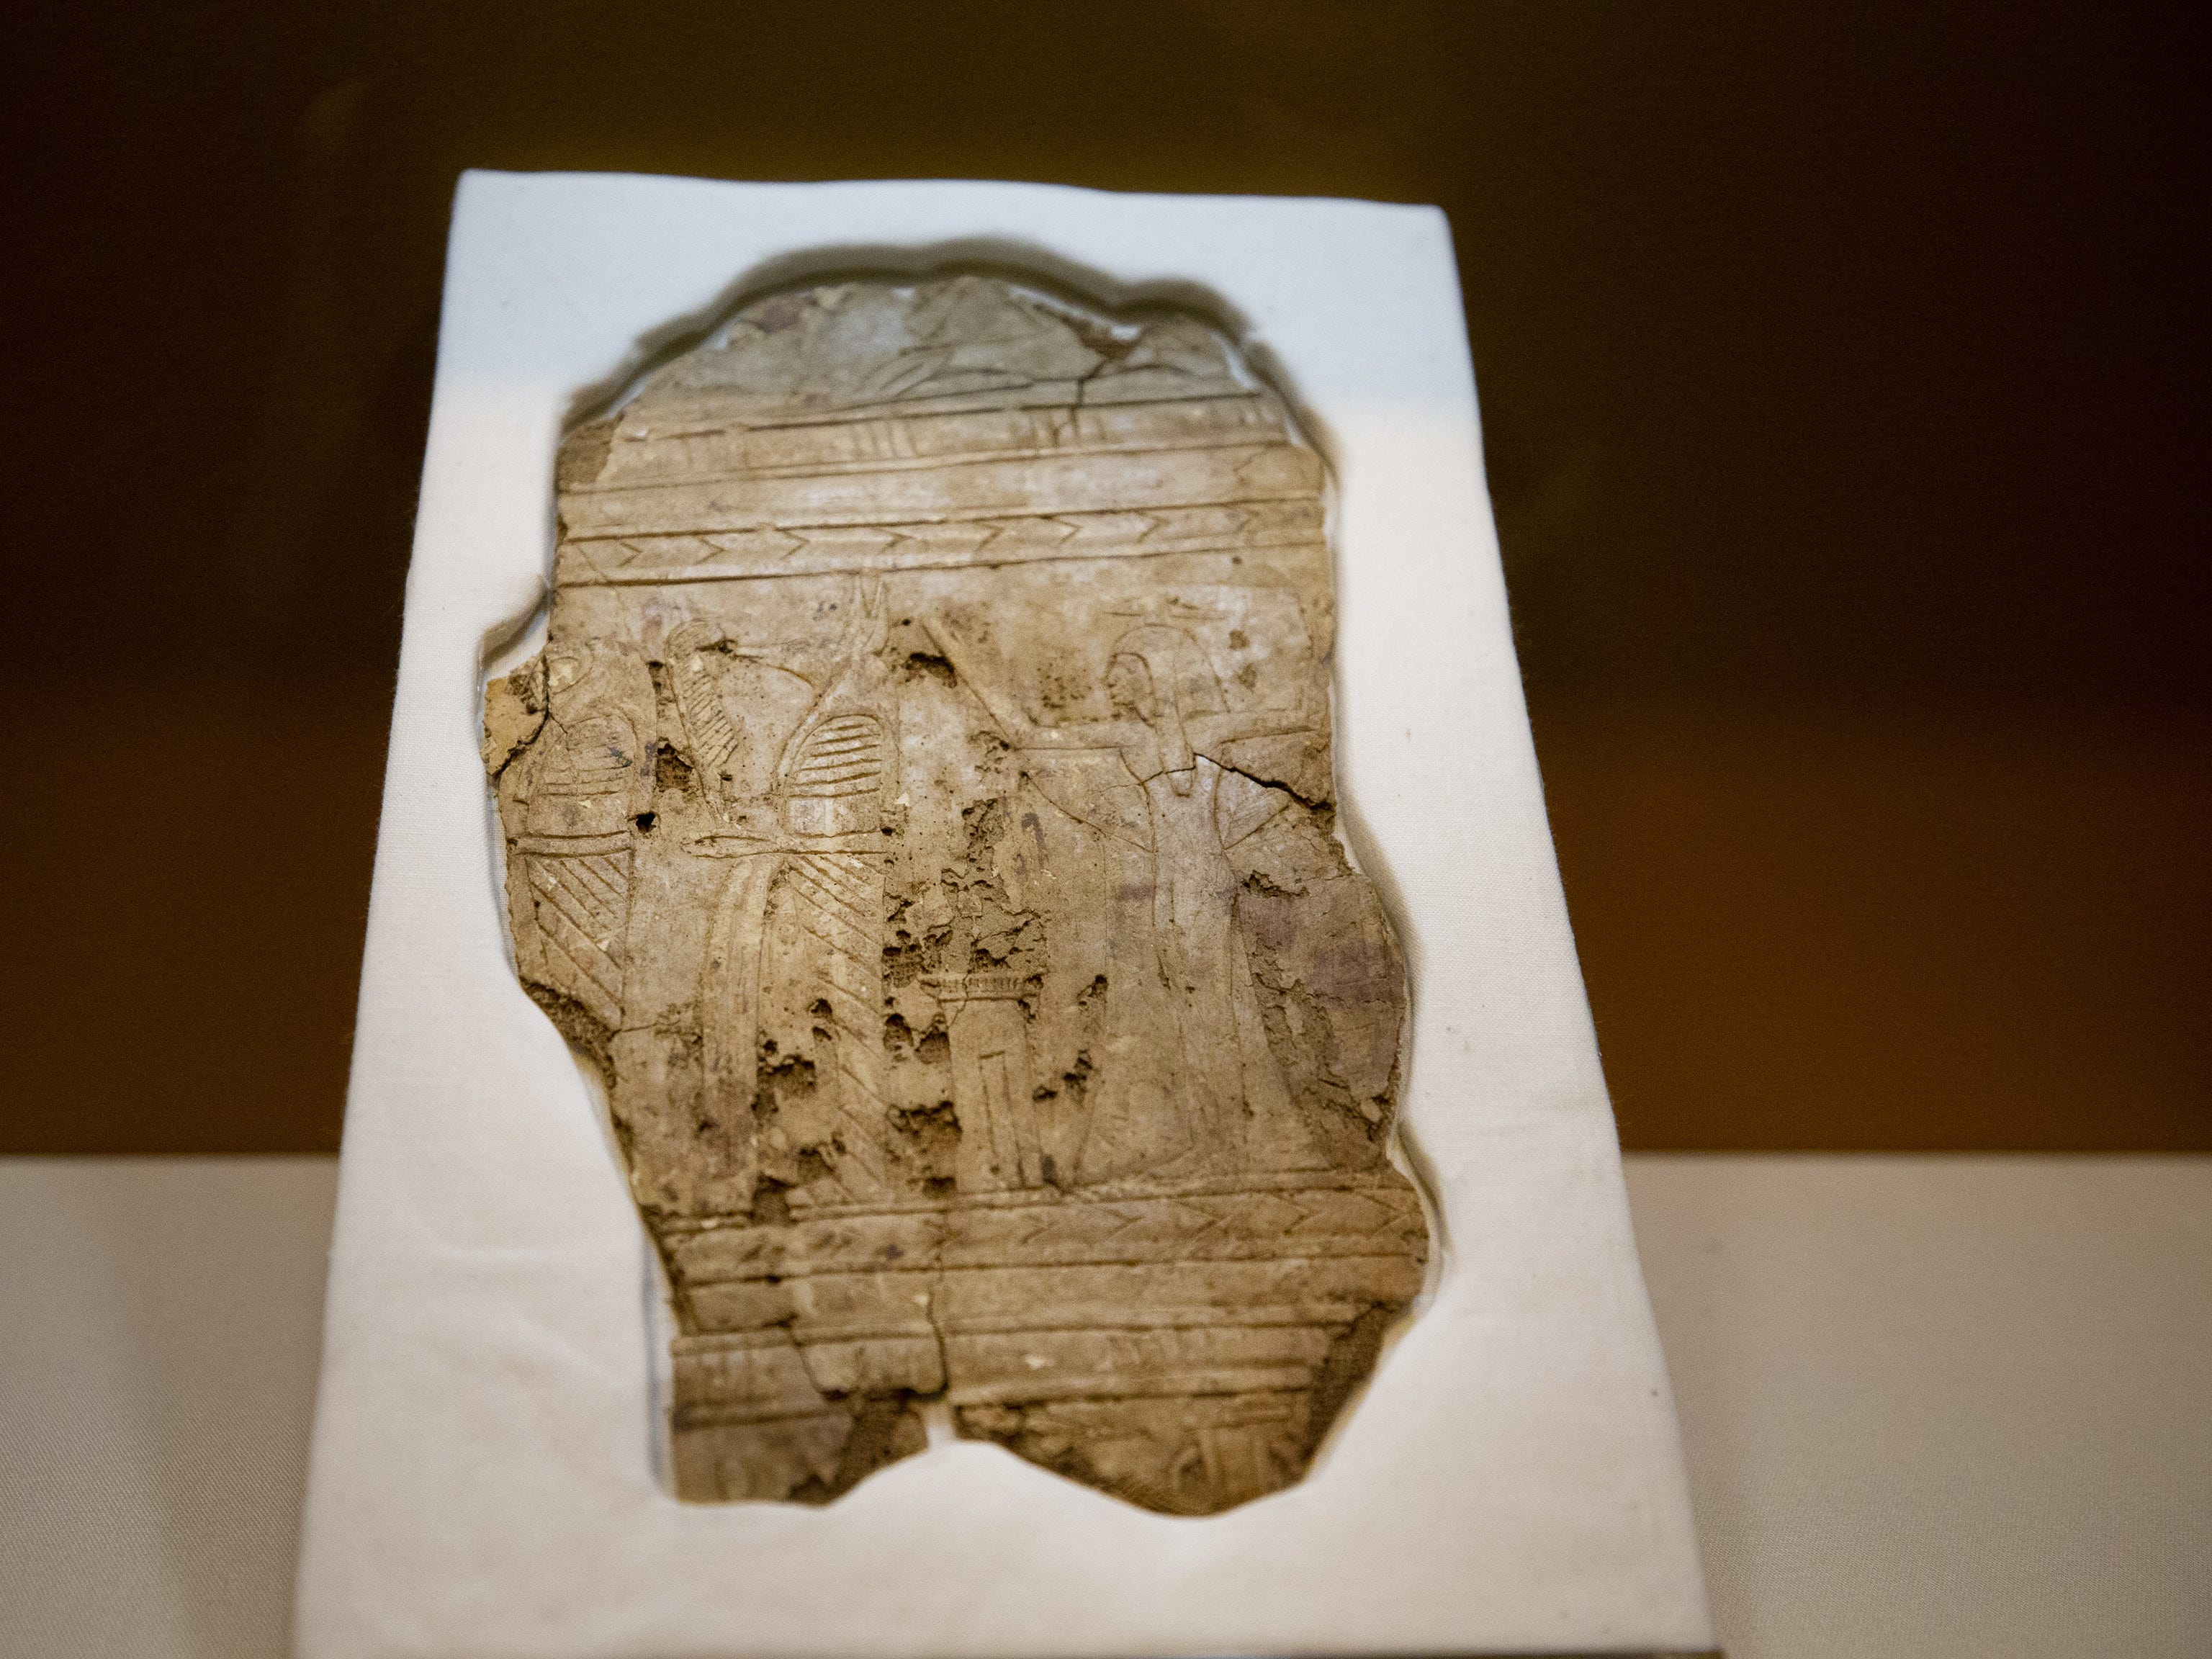 Mummies of the World: The Exhibition displays a fragment of mummy cloth. The exhibit at the Arizona Science Center includes mummies from Egypt, Europe and the U.S.